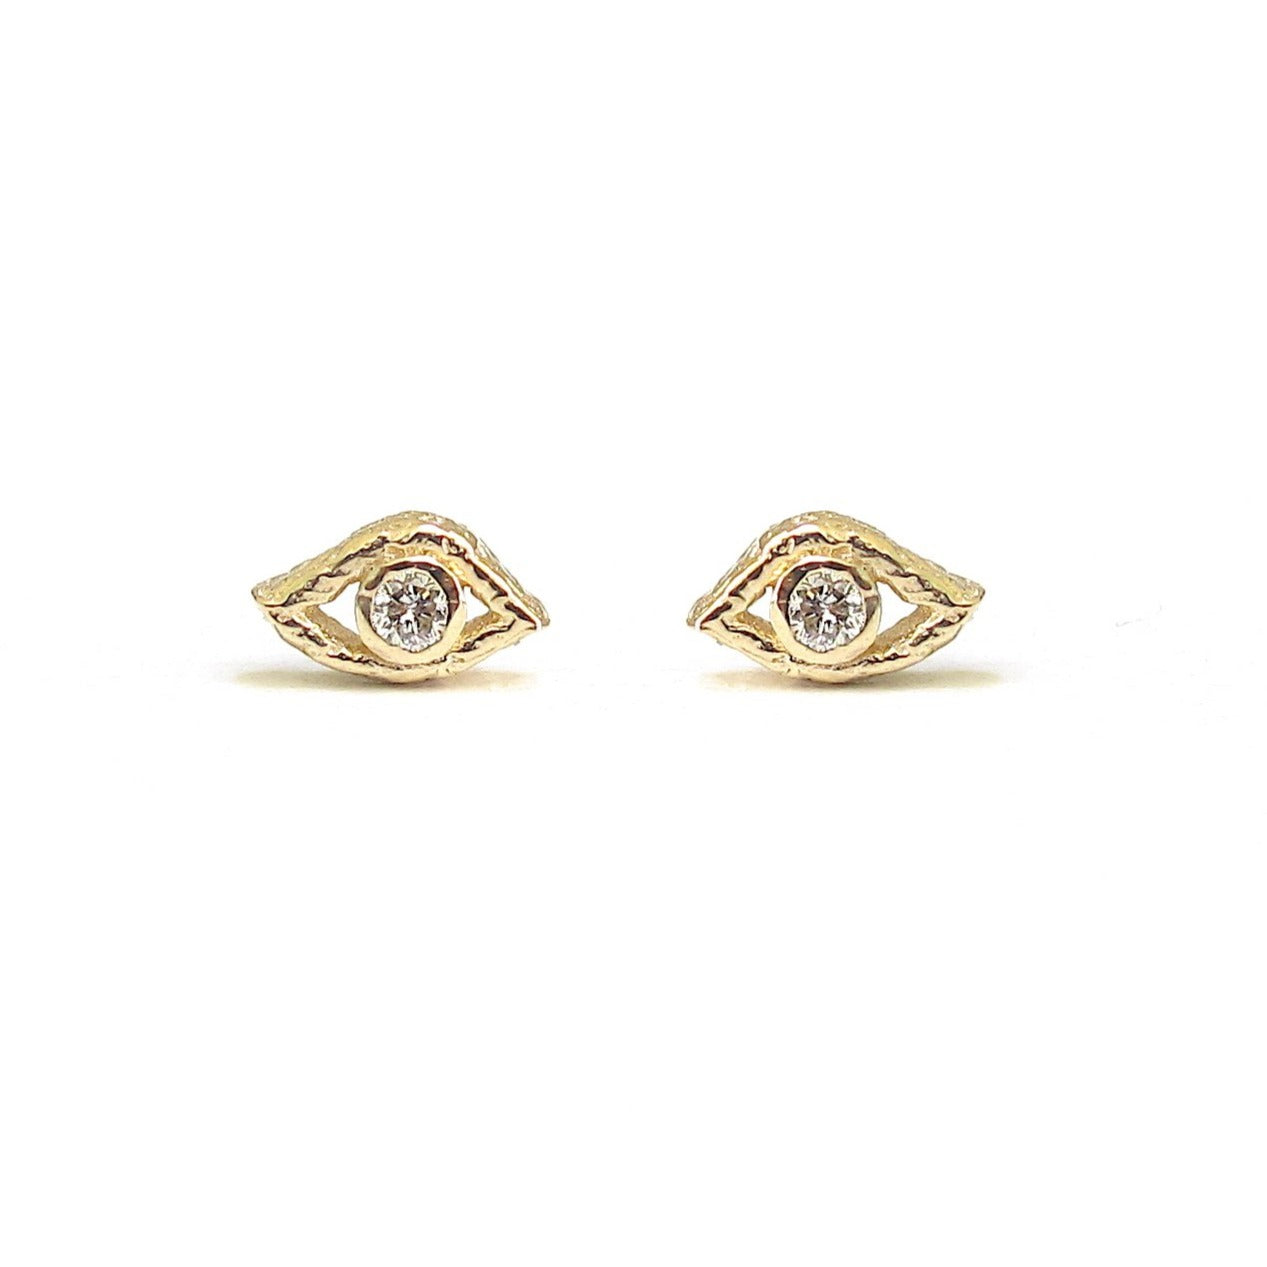 Eye stud, diamond